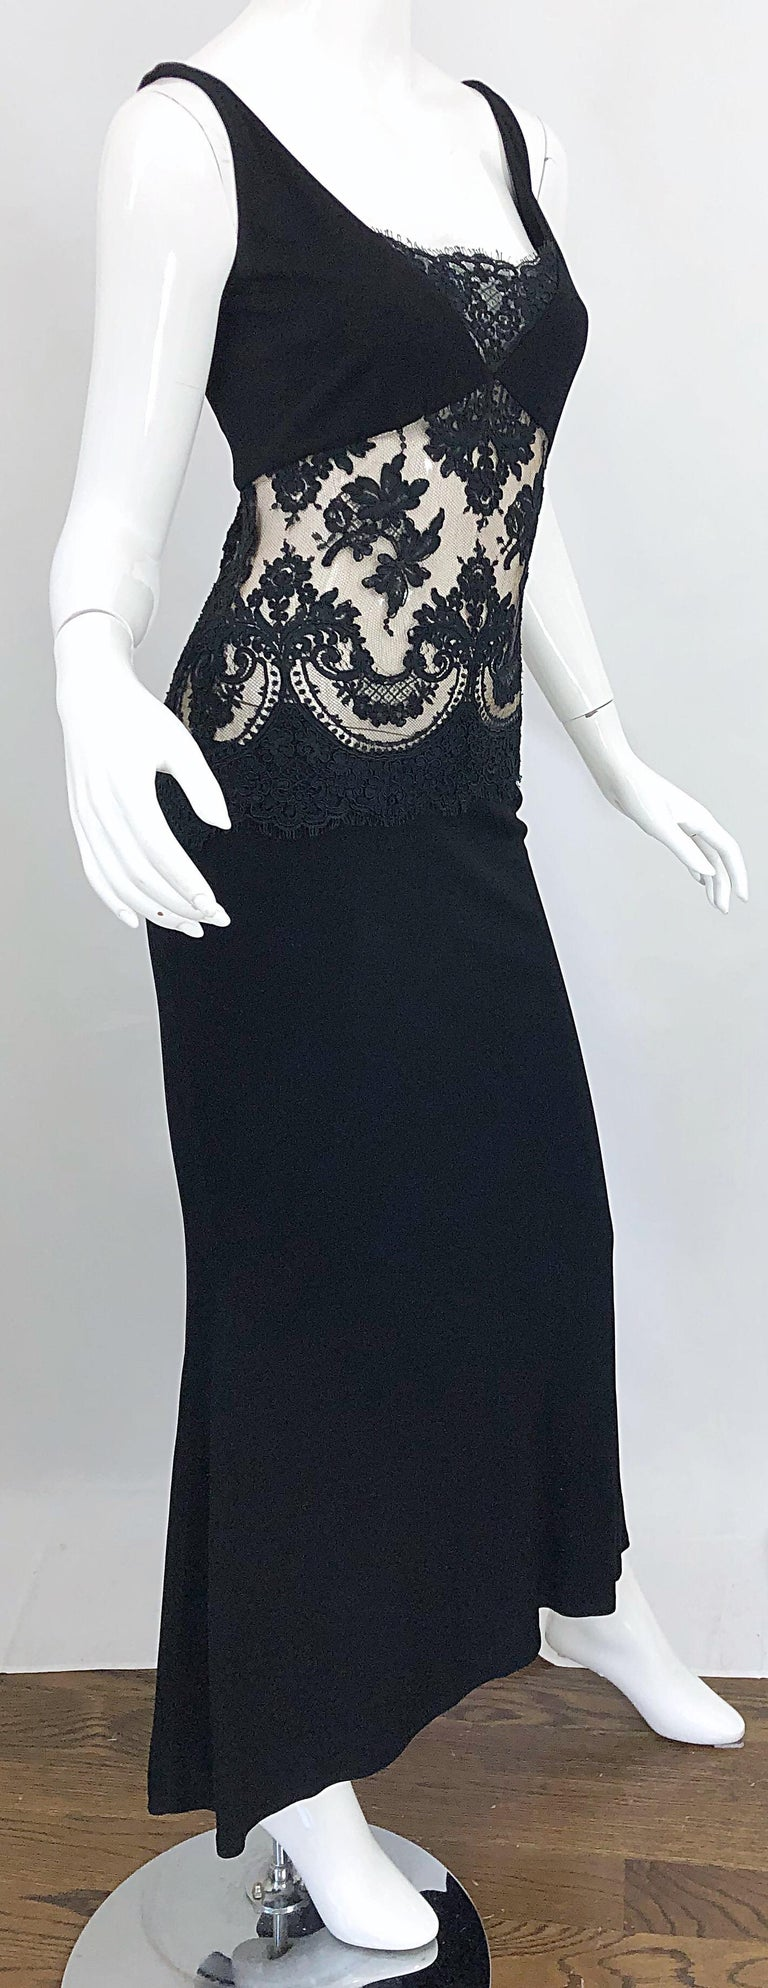 1990s Randolph Duke Black Sexy Lace Cut-Out Sleeveless Vintage 90s Evening Gown For Sale 4